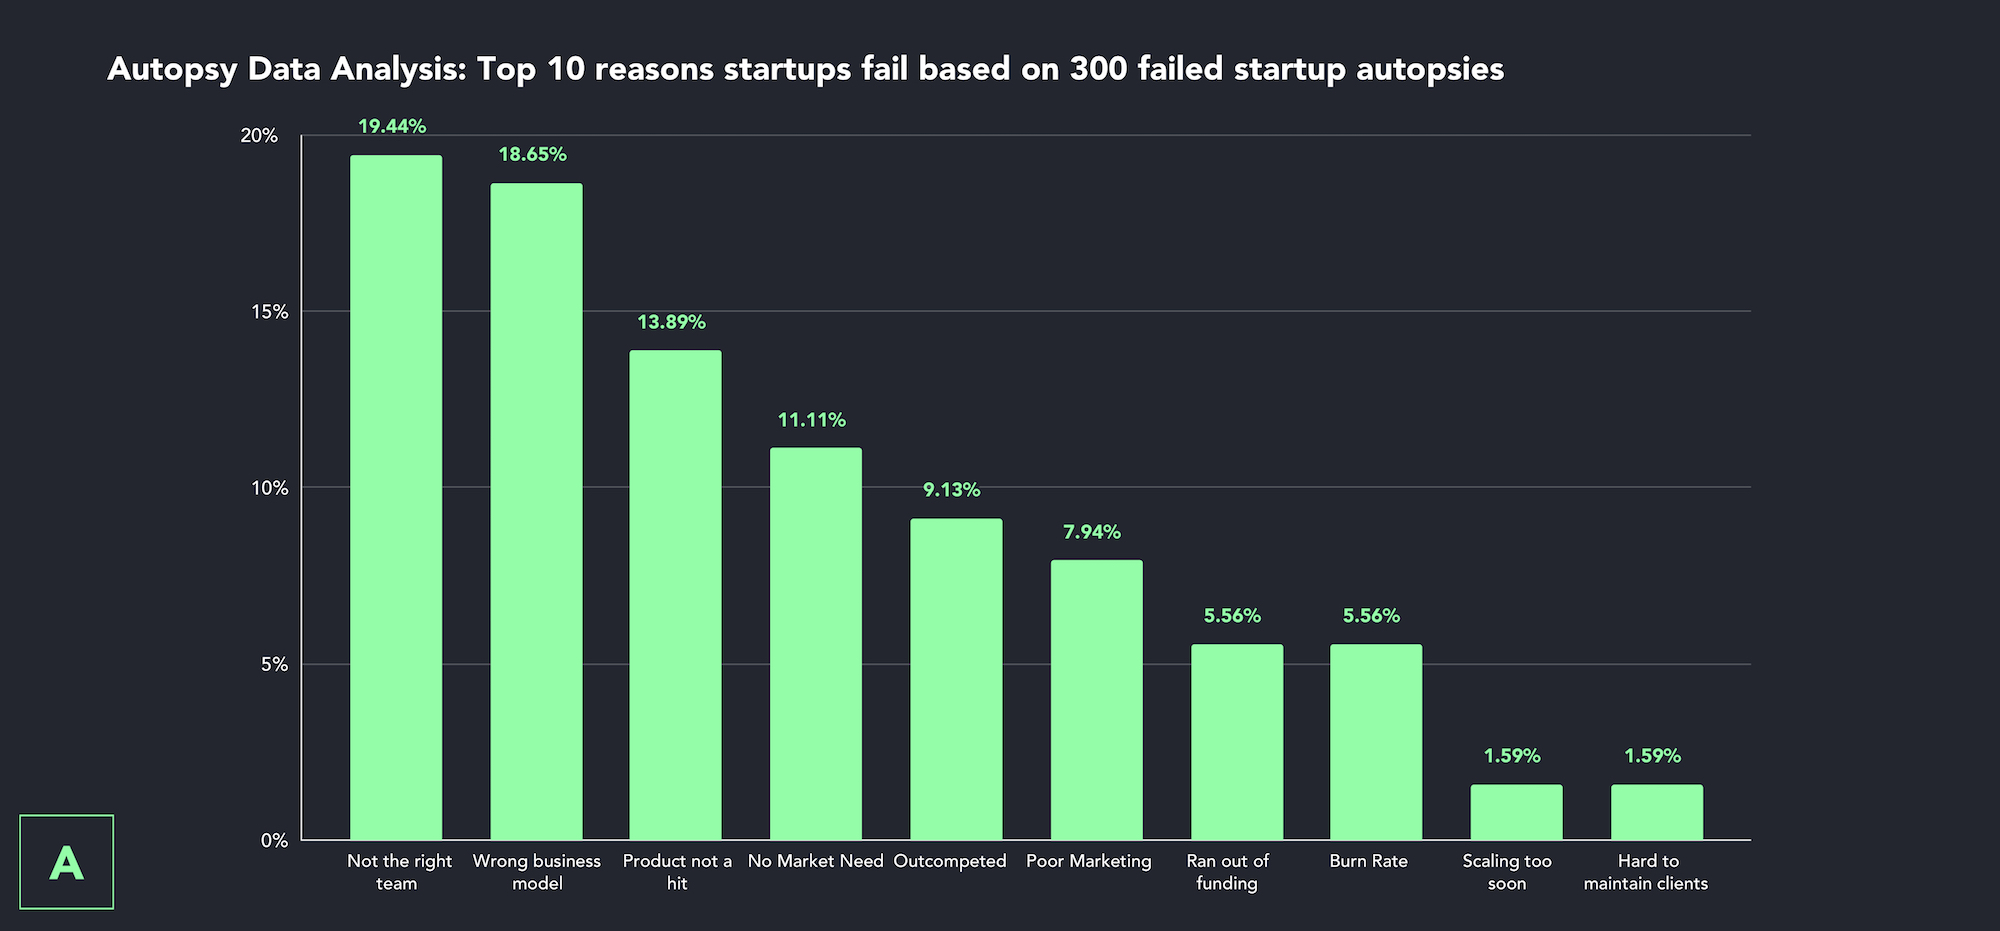 300 post-mortems later… - We were delighted to partner with Forward Partners, one of the leading early-stage VCs in London to conduct a data analysis on 300 postmortems of startups ranging from Pre-seed to Series A.